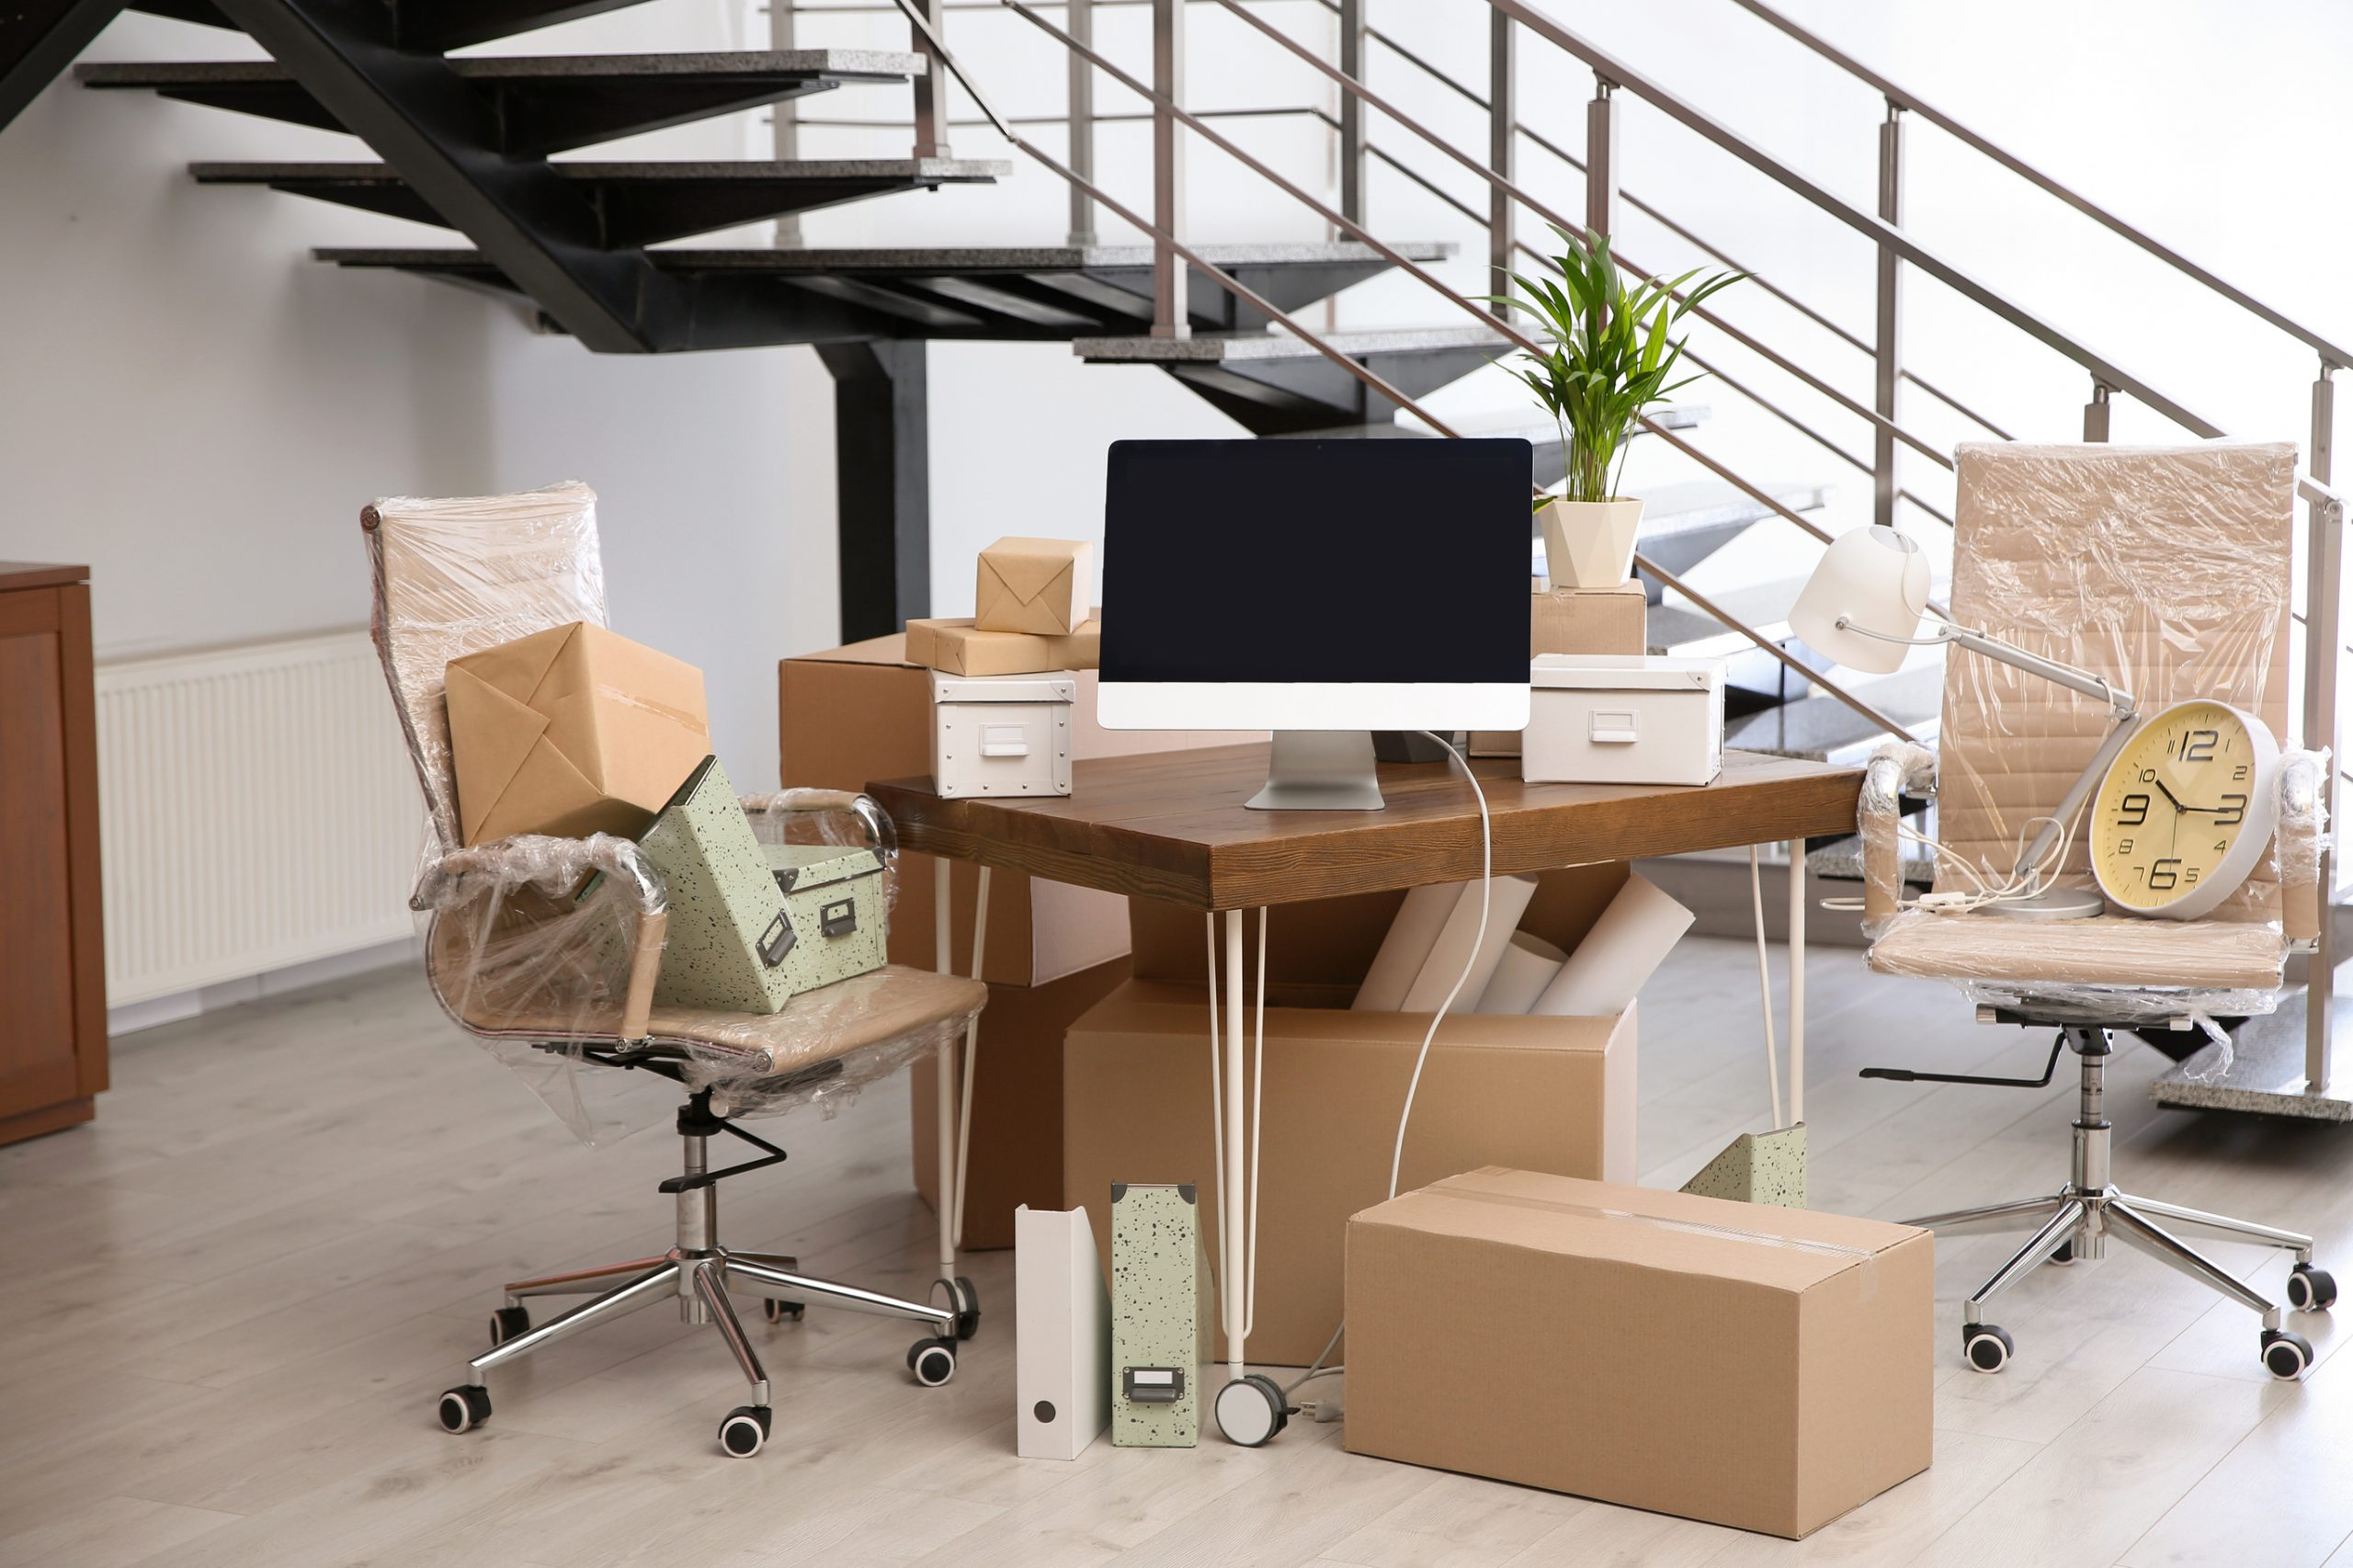 Moving Office, Commercial Moves, Moving House, Moivng Office, Commercial Moves, Office Storage, Esses, Neales Removals v1